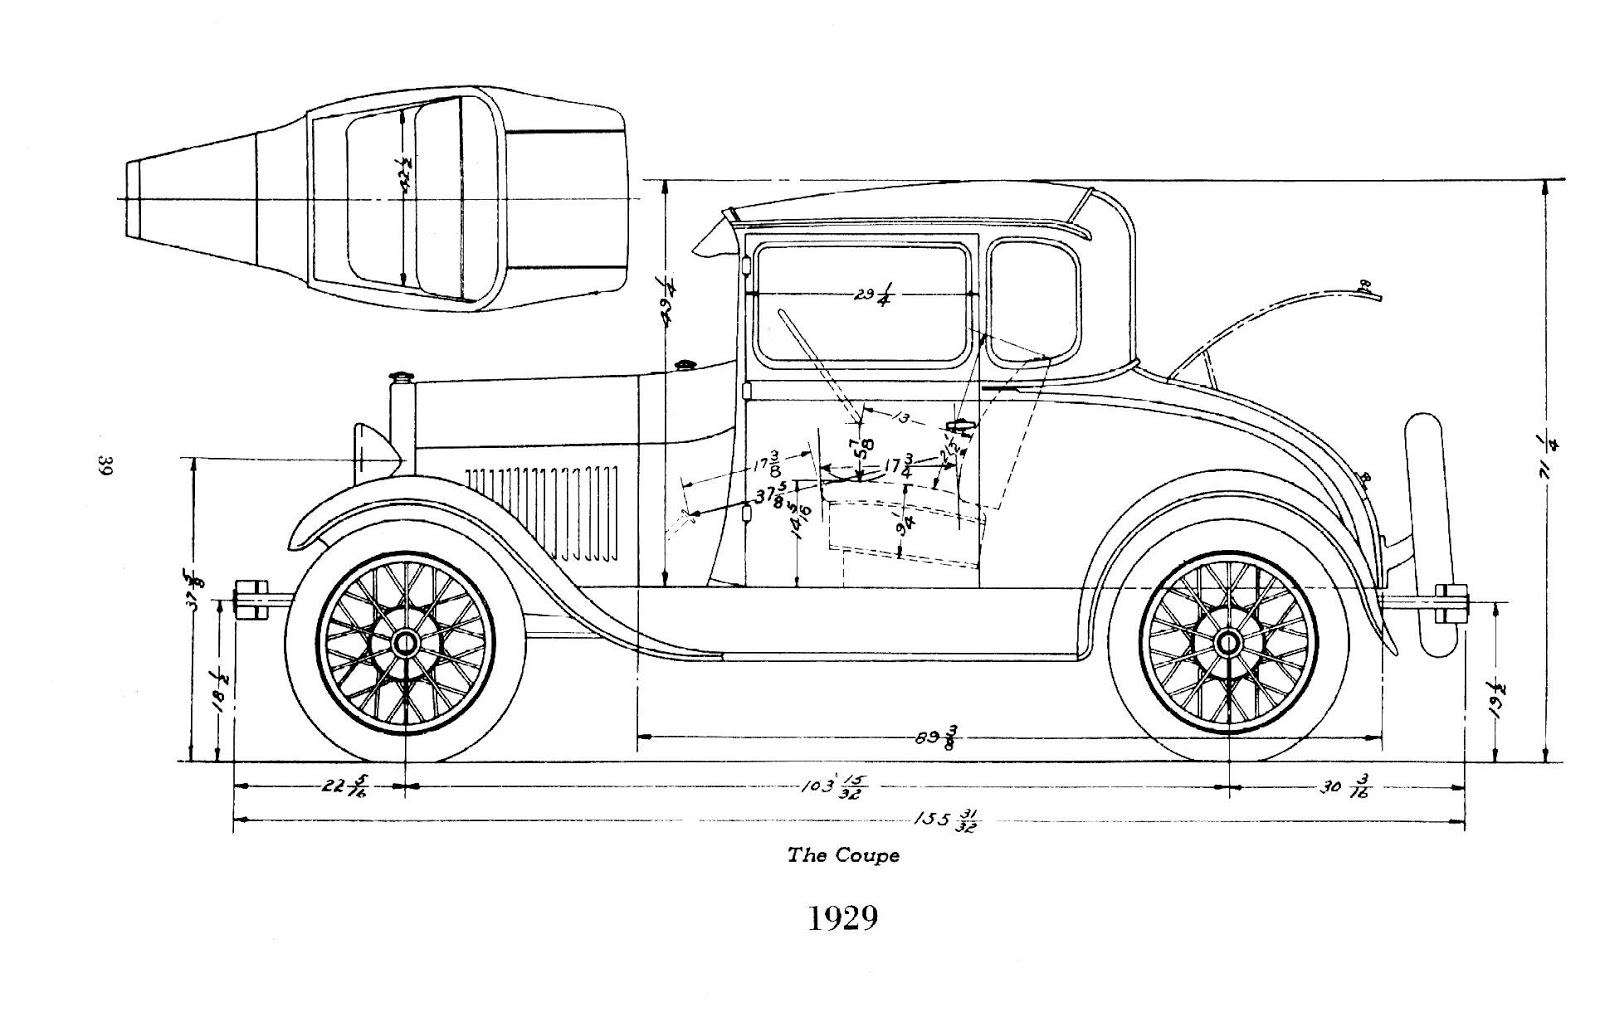 1930 Model A Ignition Wiring Diagram as well 28 Model A Ignition Wire Diagram furthermore 2 furthermore 1932 Ford Frame Diagram likewise 272085703112. on 1931 ford coupe